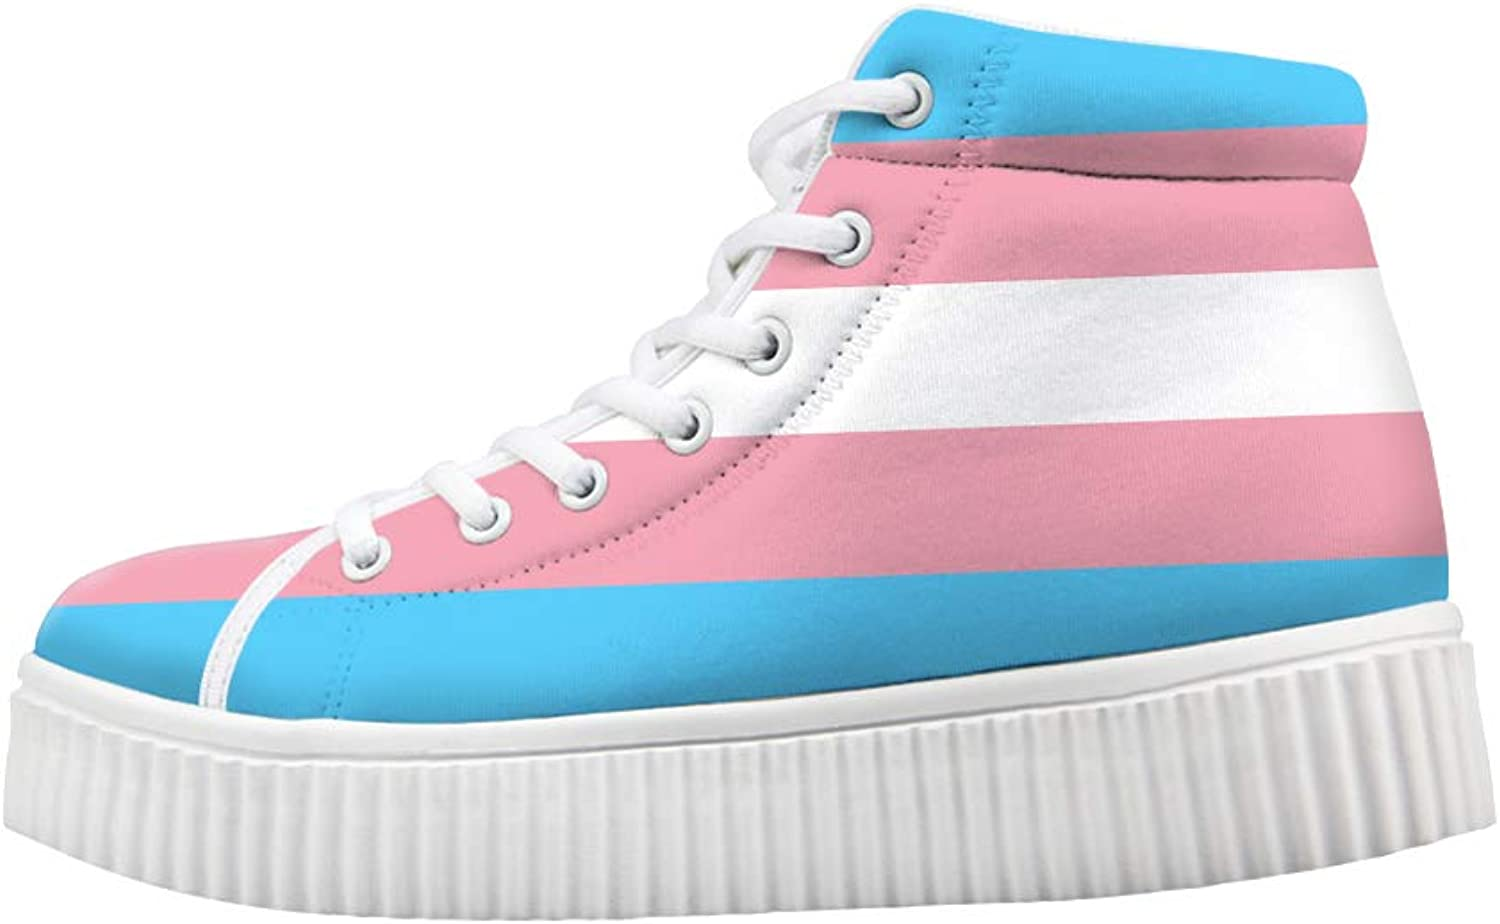 Owaheson Platform Lace up Sneaker Casual Chunky Walking shoes High Top Women Transgender Pride Flag